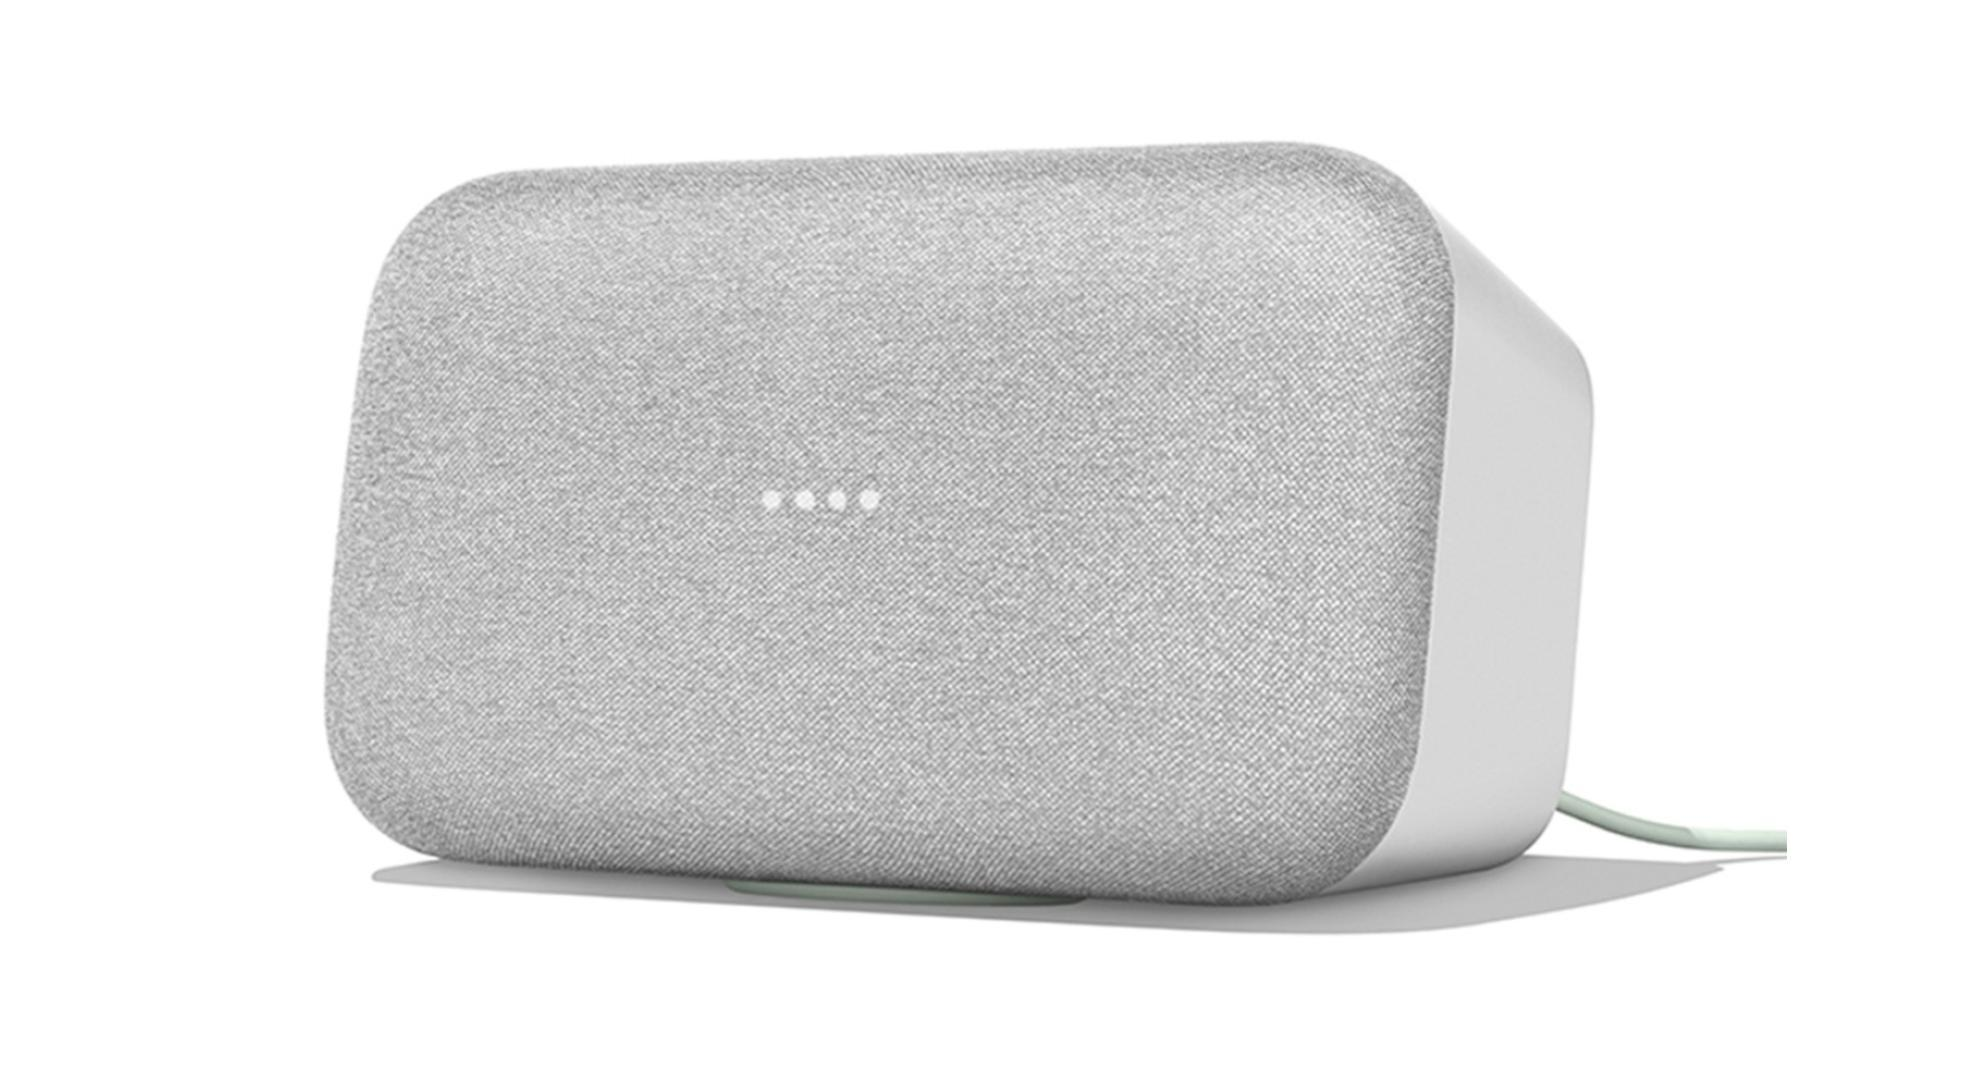 🔥 Bon plan : le Google Home Max descend à 299 euros sur Darty et fnac.com